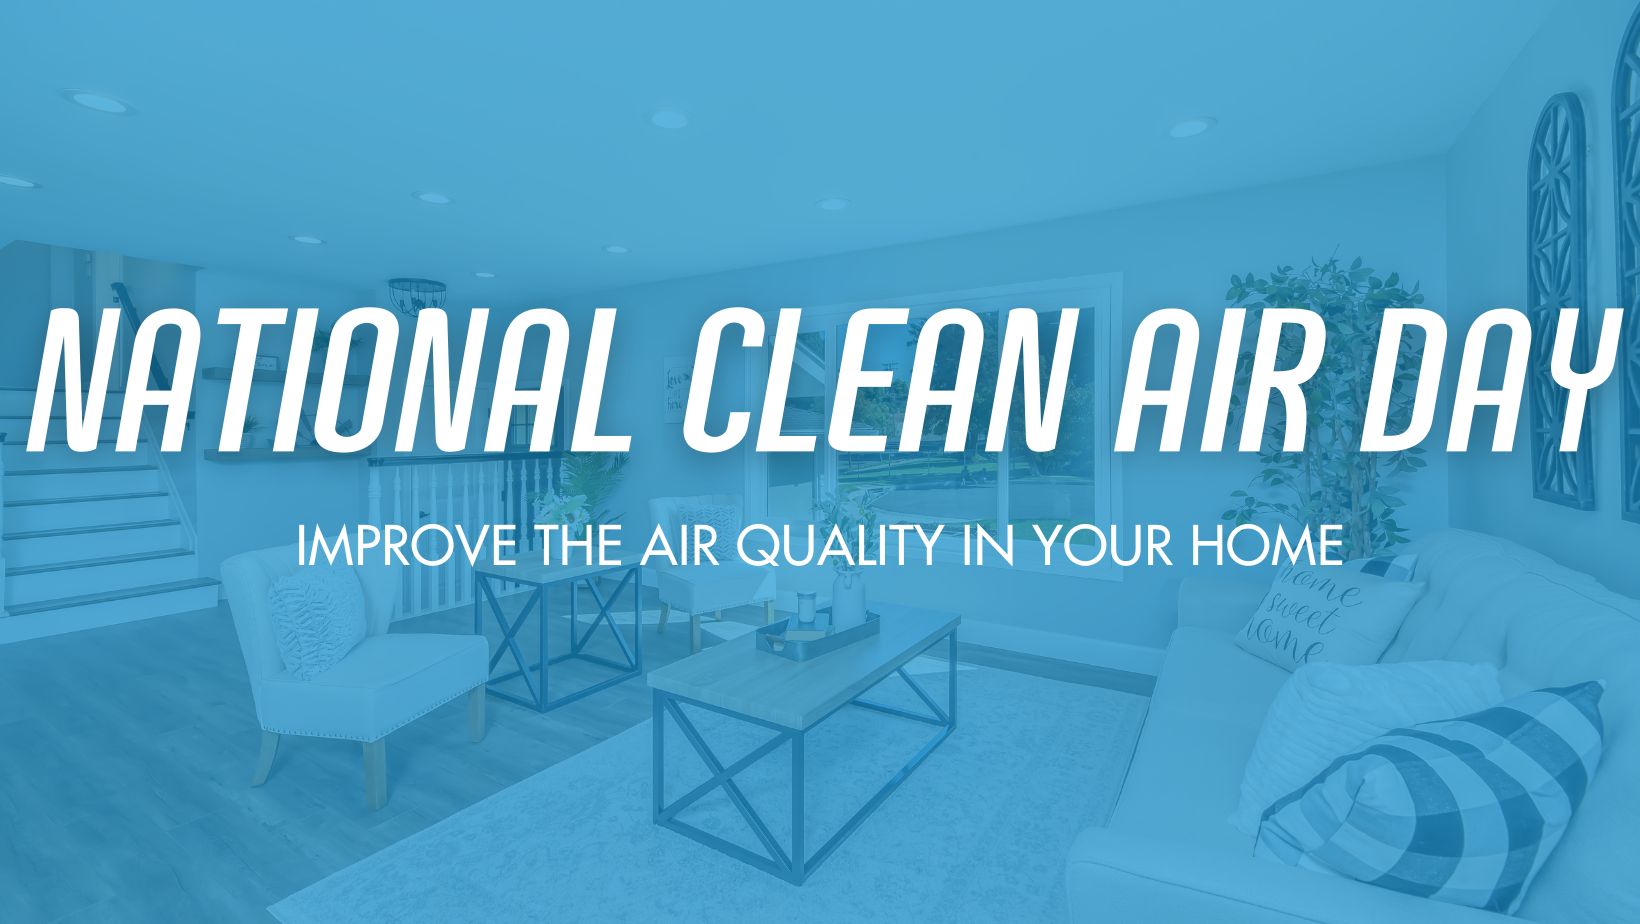 Ease Air Celebrates The International Day of Clean Air